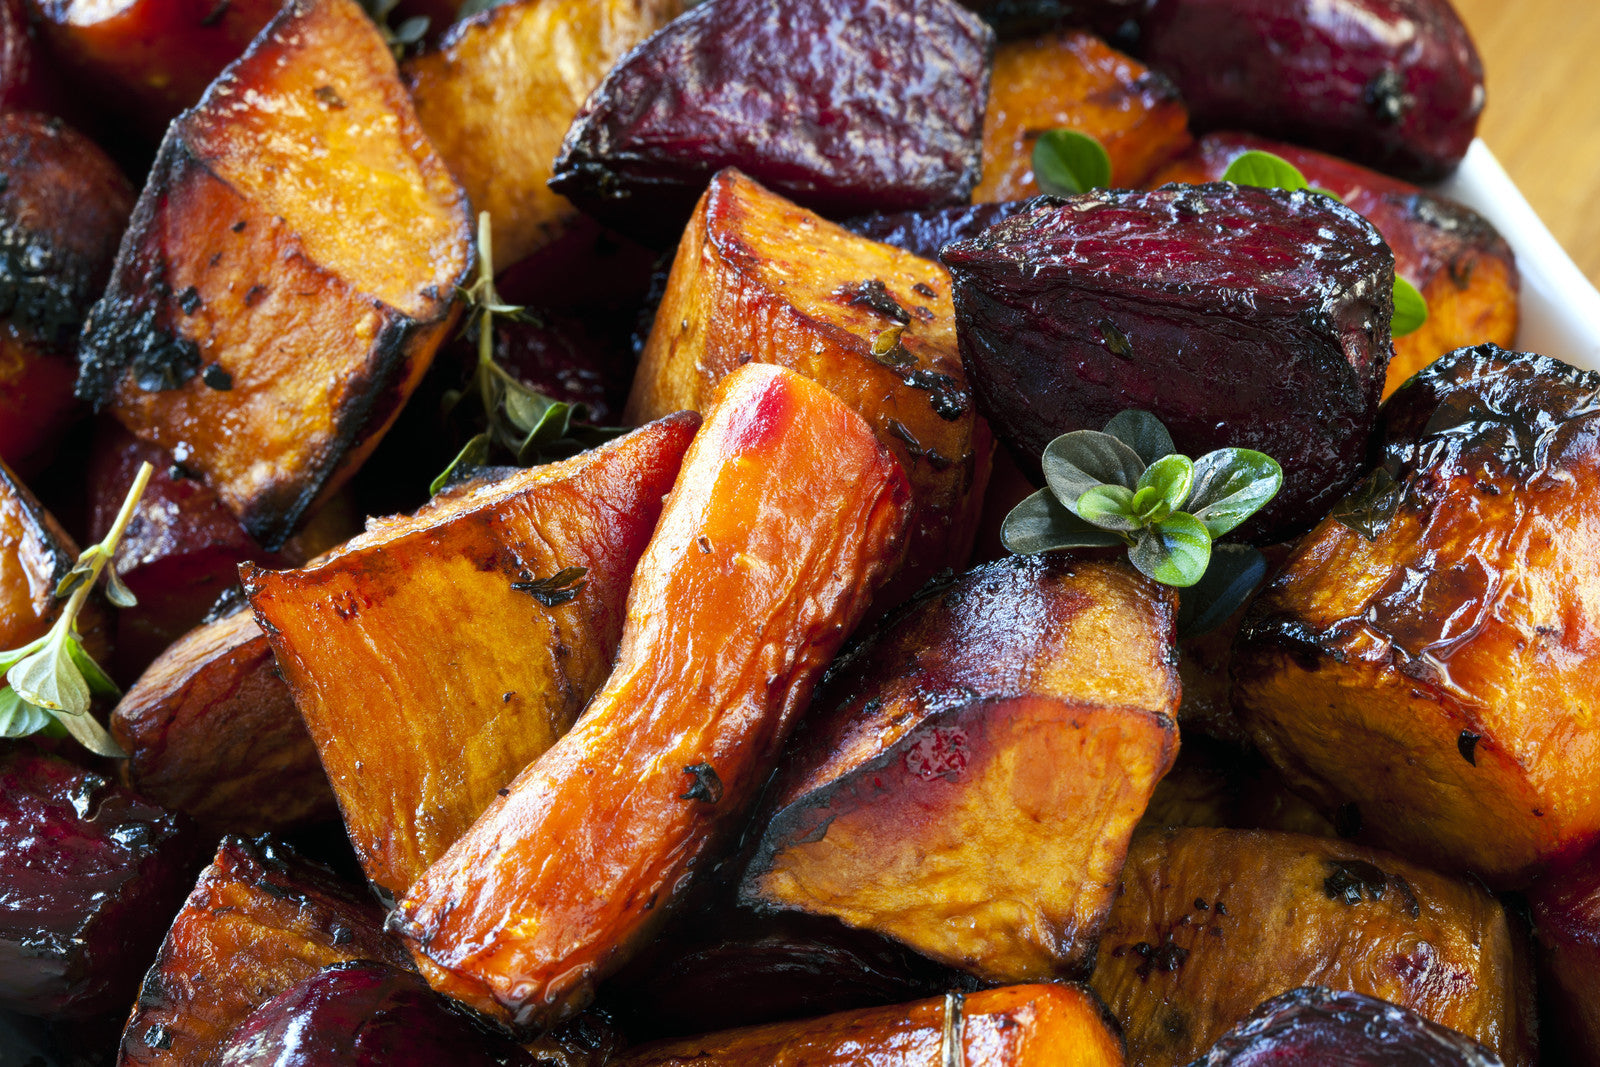 Chili-Lime Roasted Sweet Potatoes